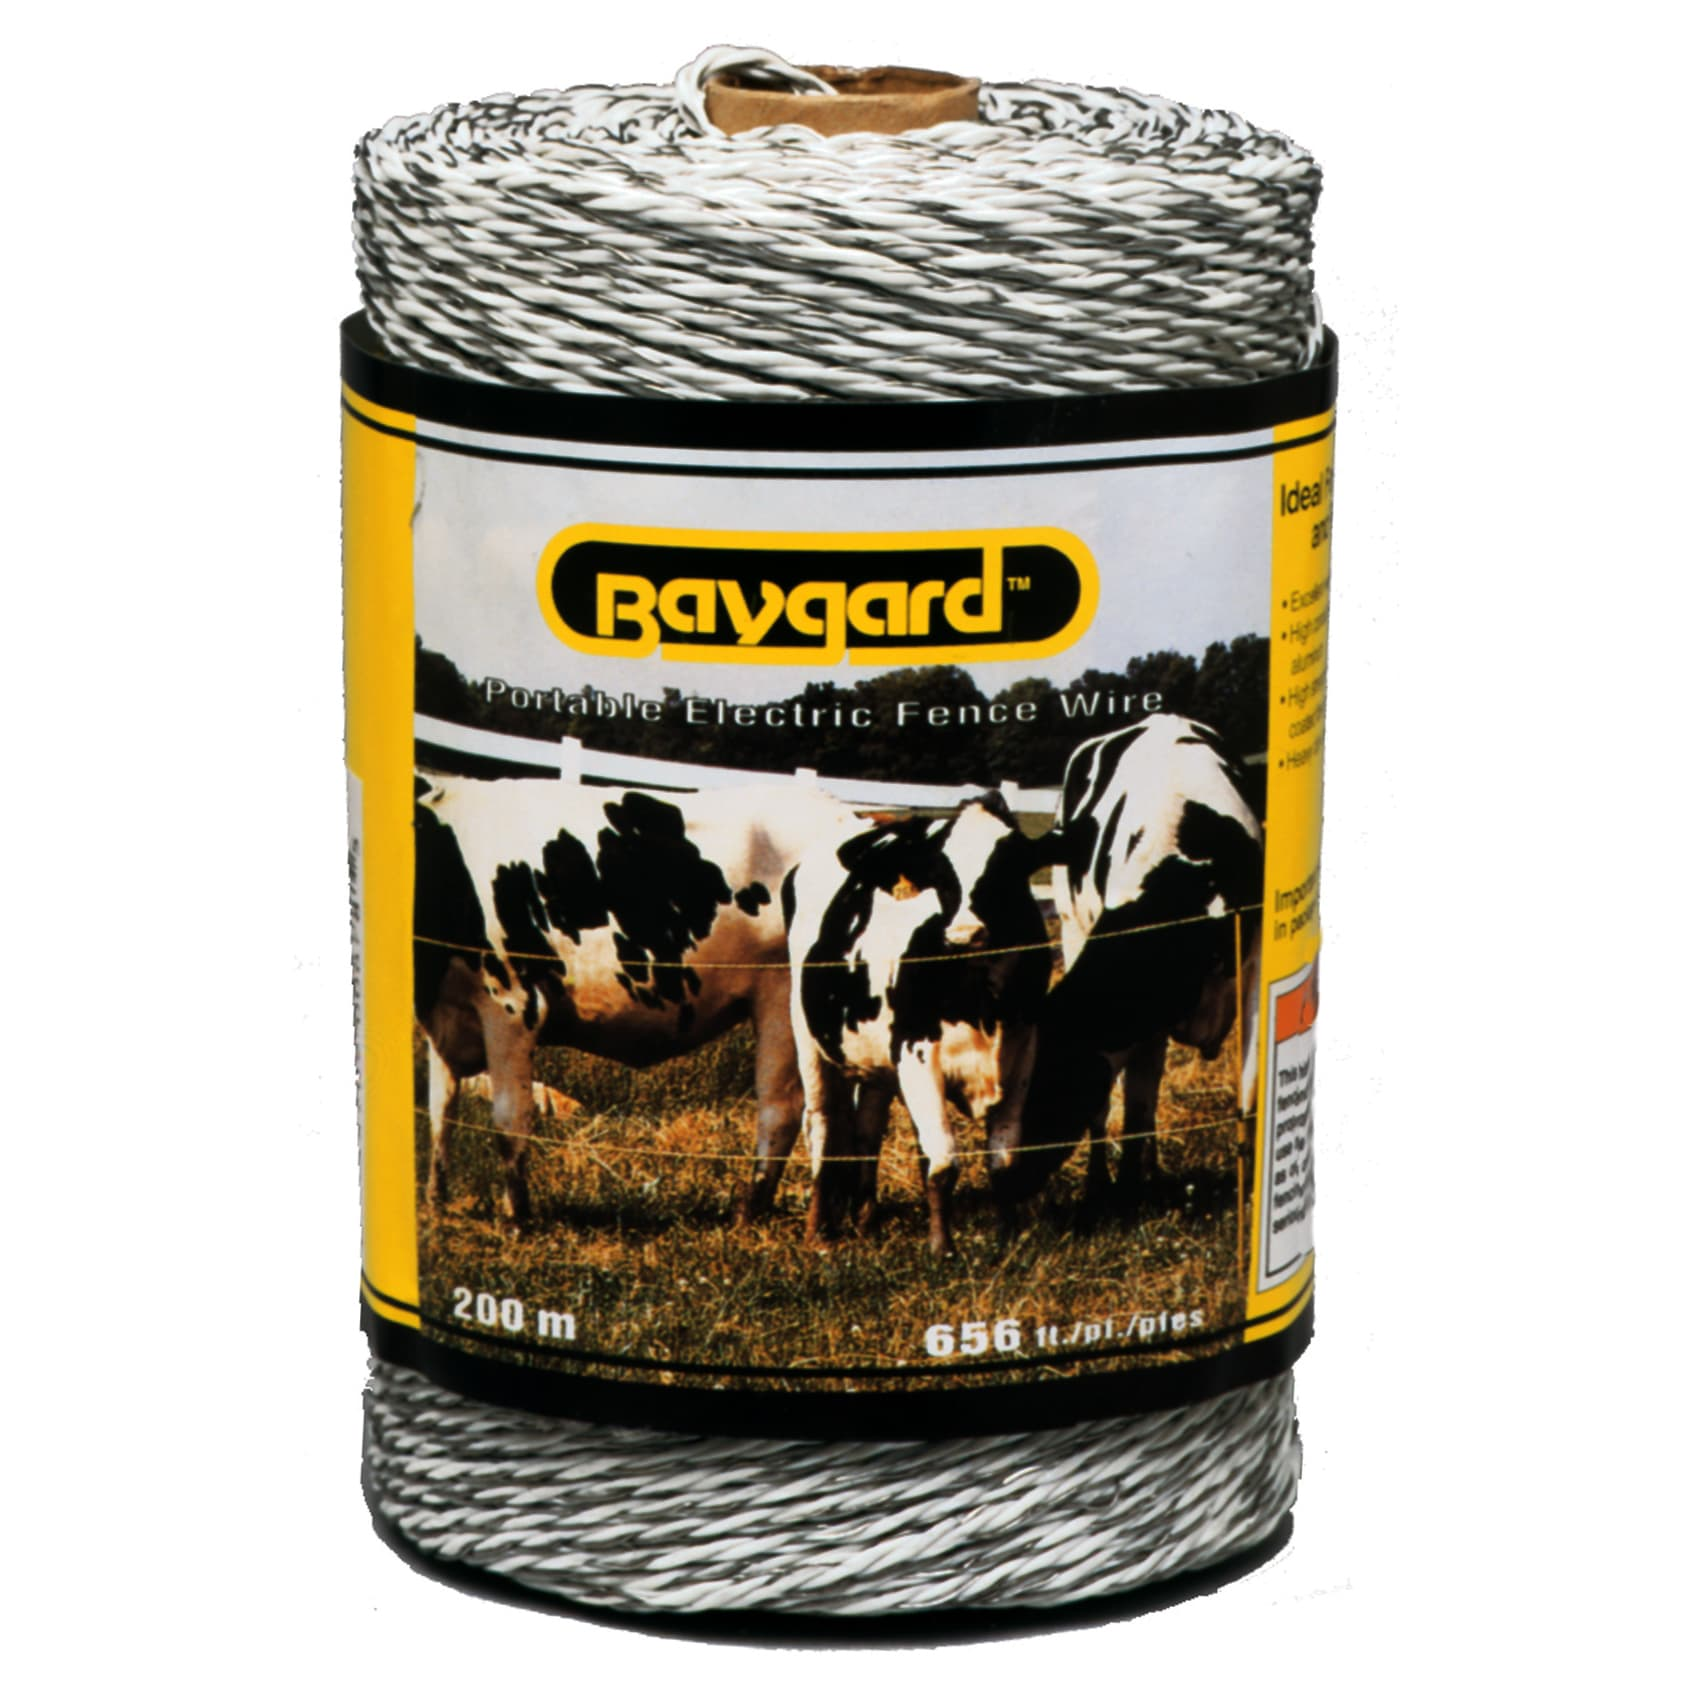 Baygard 00678 656 feet White Portable Electric Fence Wire...